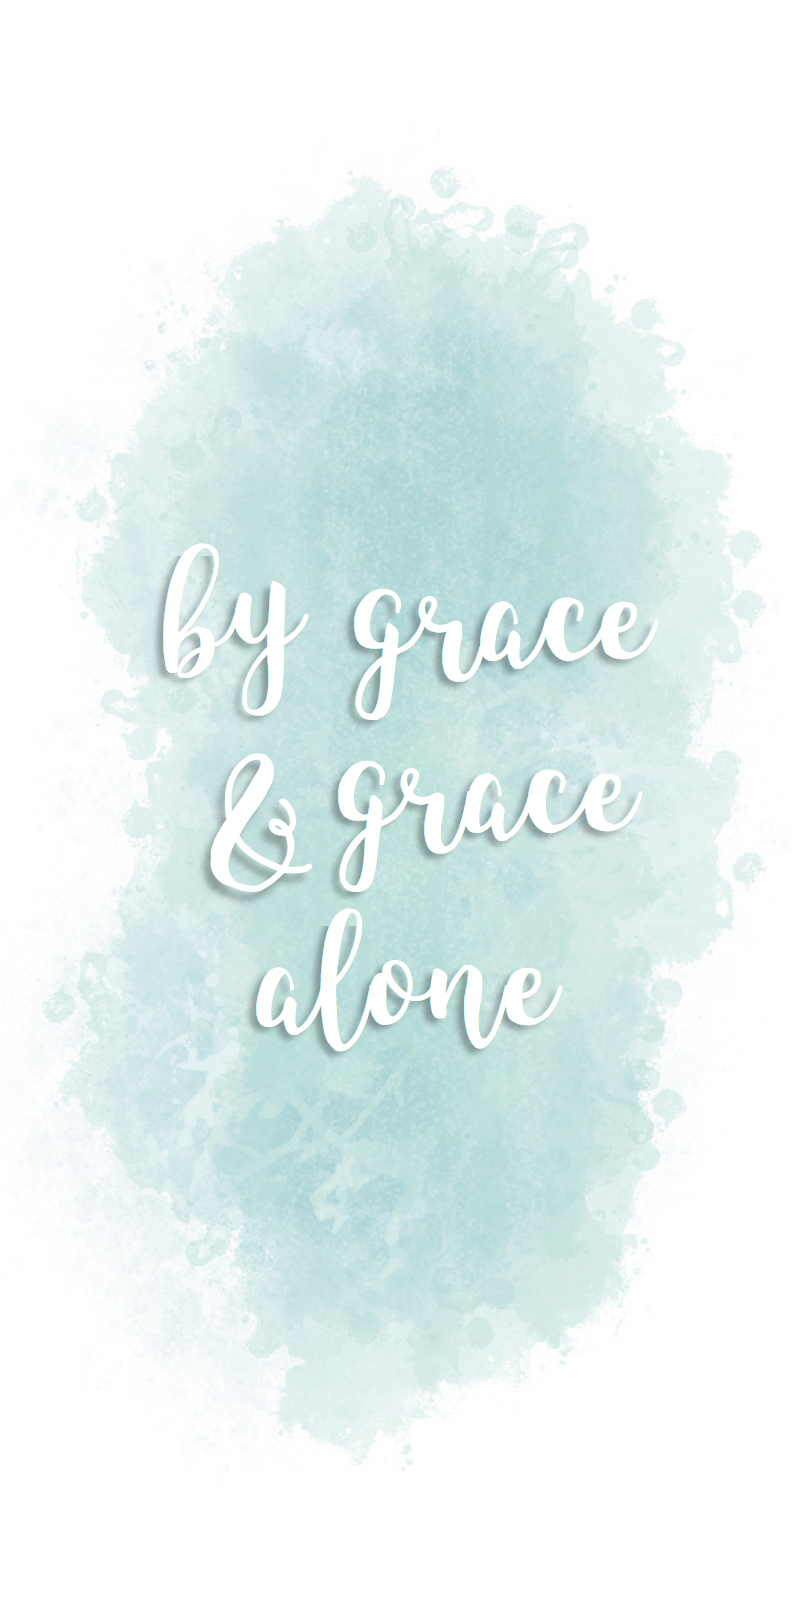 Wonderful Wallpaper Marble Bible Verse - 5121bd75a43dd1bd54d3a5048c25345f  Picture_566476.png